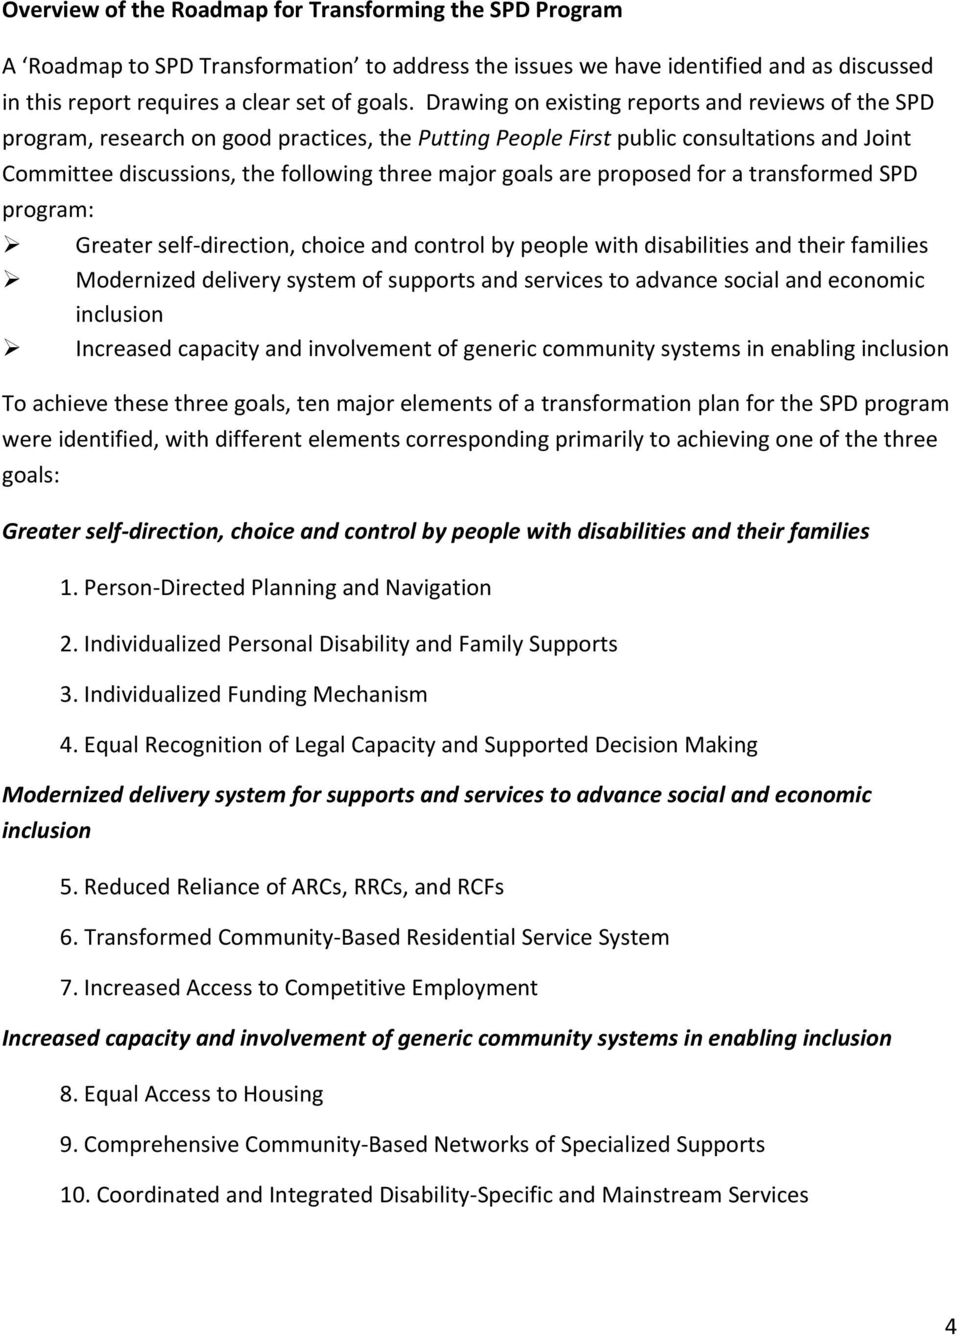 are proposed for a transformed SPD program: Greater self direction, choice and control by people with disabilities and their families Modernized delivery system of supports and services to advance